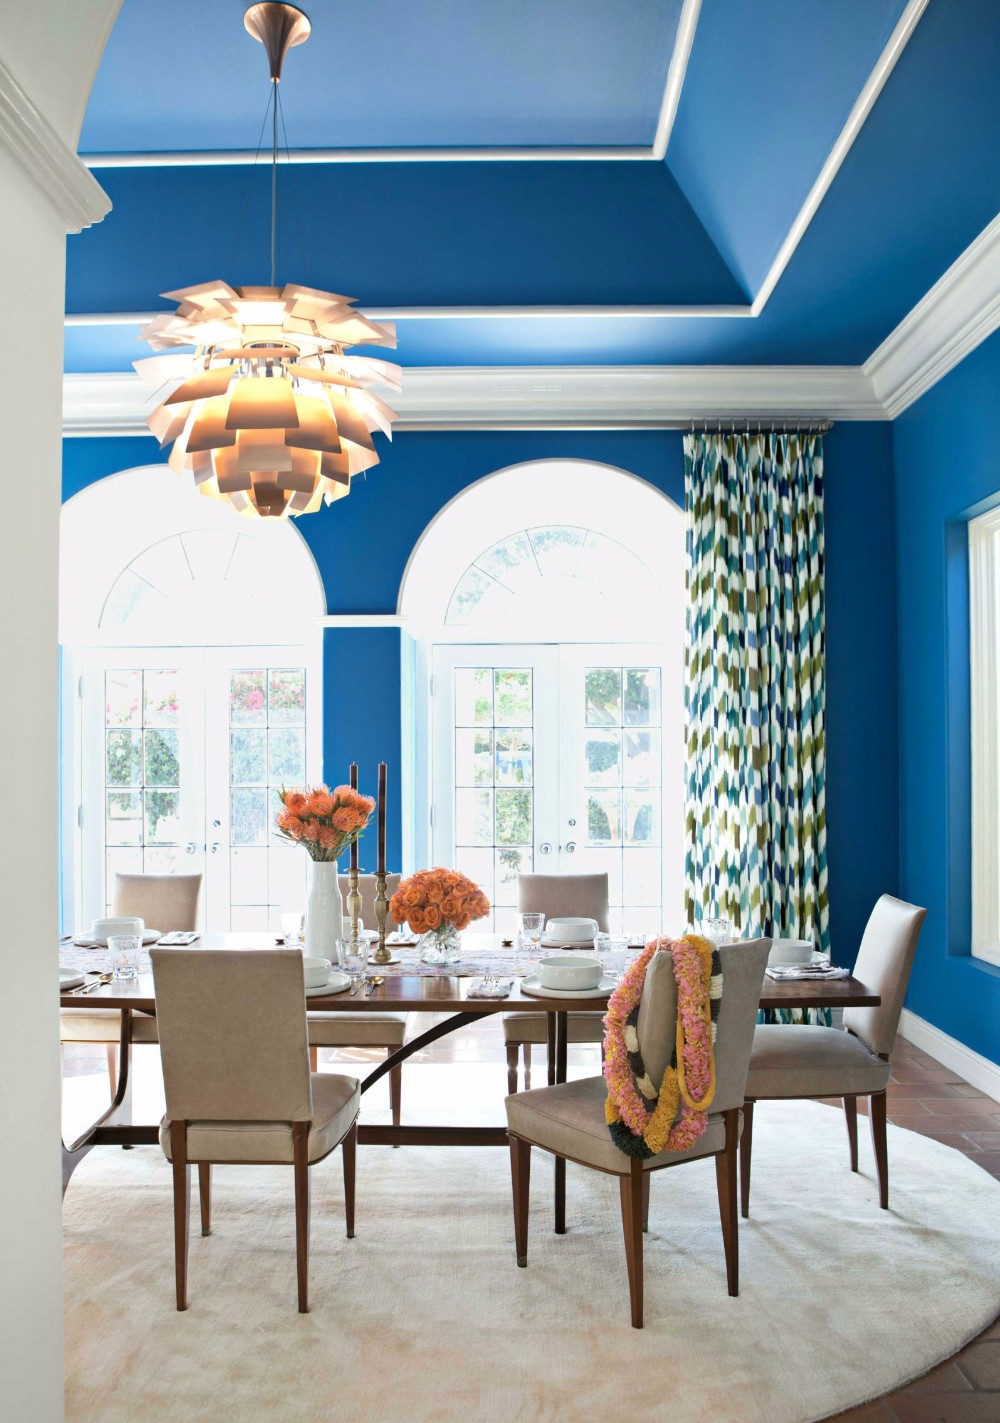 dining room 15 Best Colors for Dining Rooms 54c0a5d0778bd   06 hbx jane churchill rossini fabric nickey kehoe 0313 s2